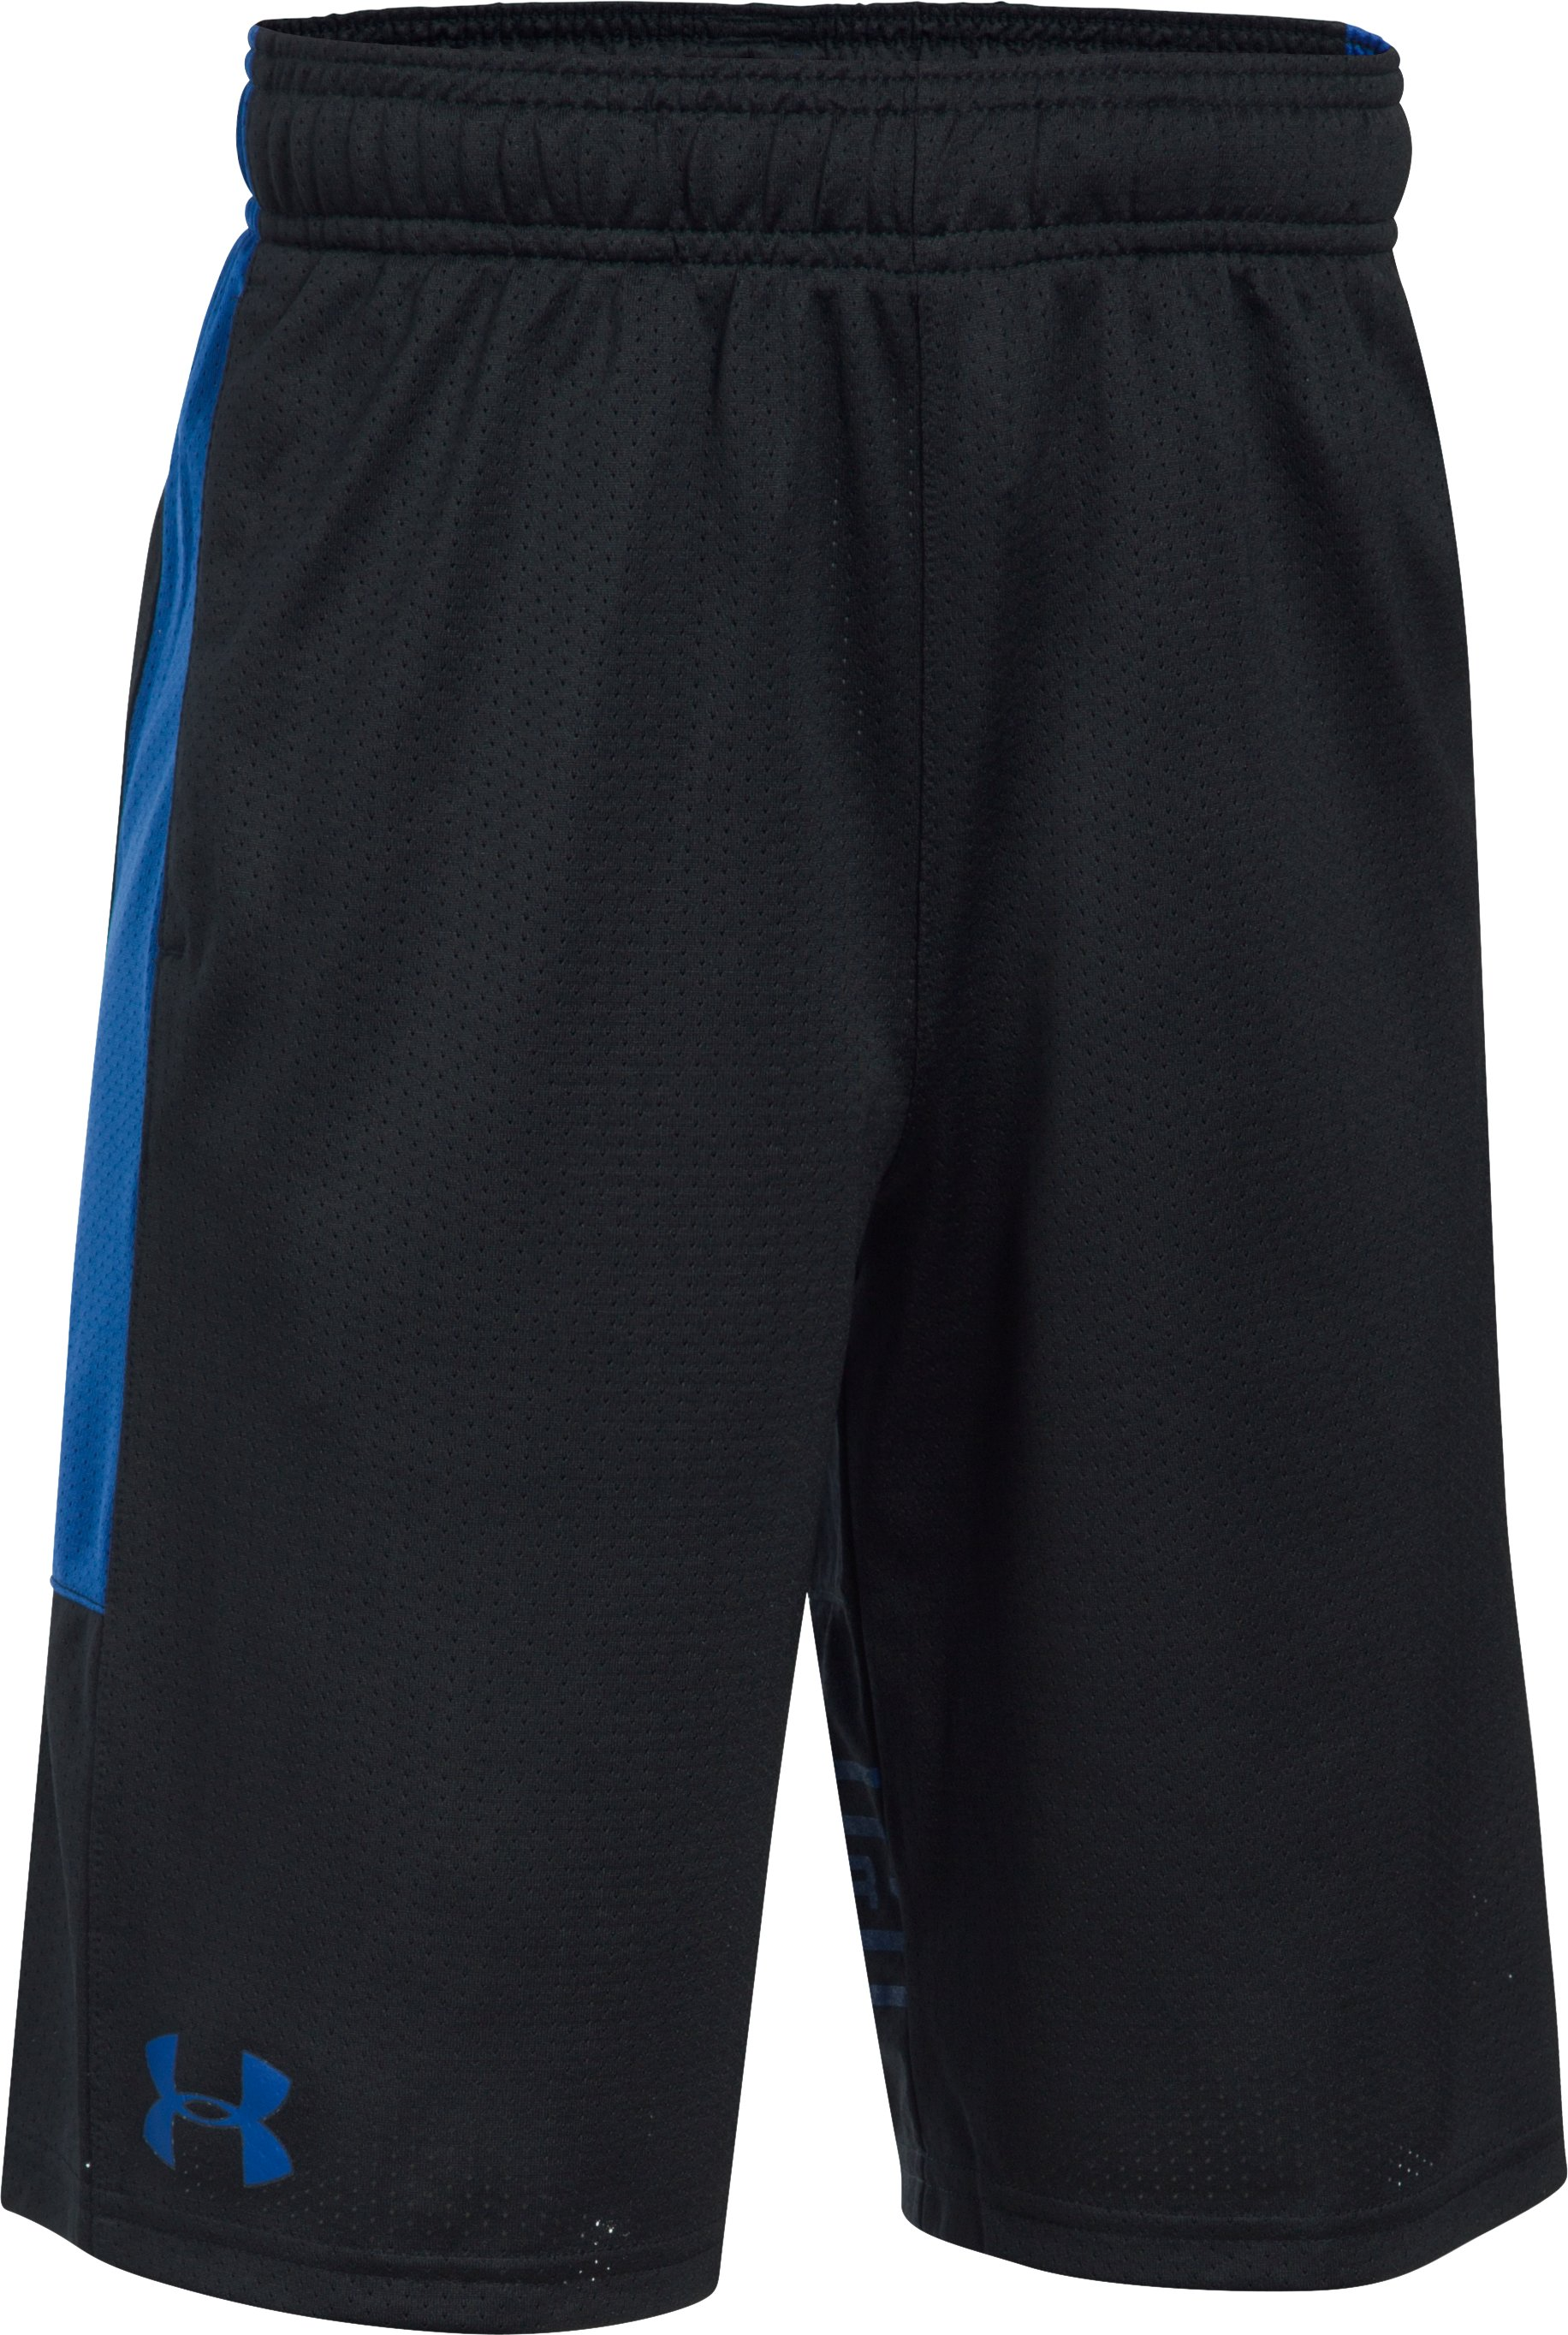 Boys' UA Train To Game Shorts, Black ,